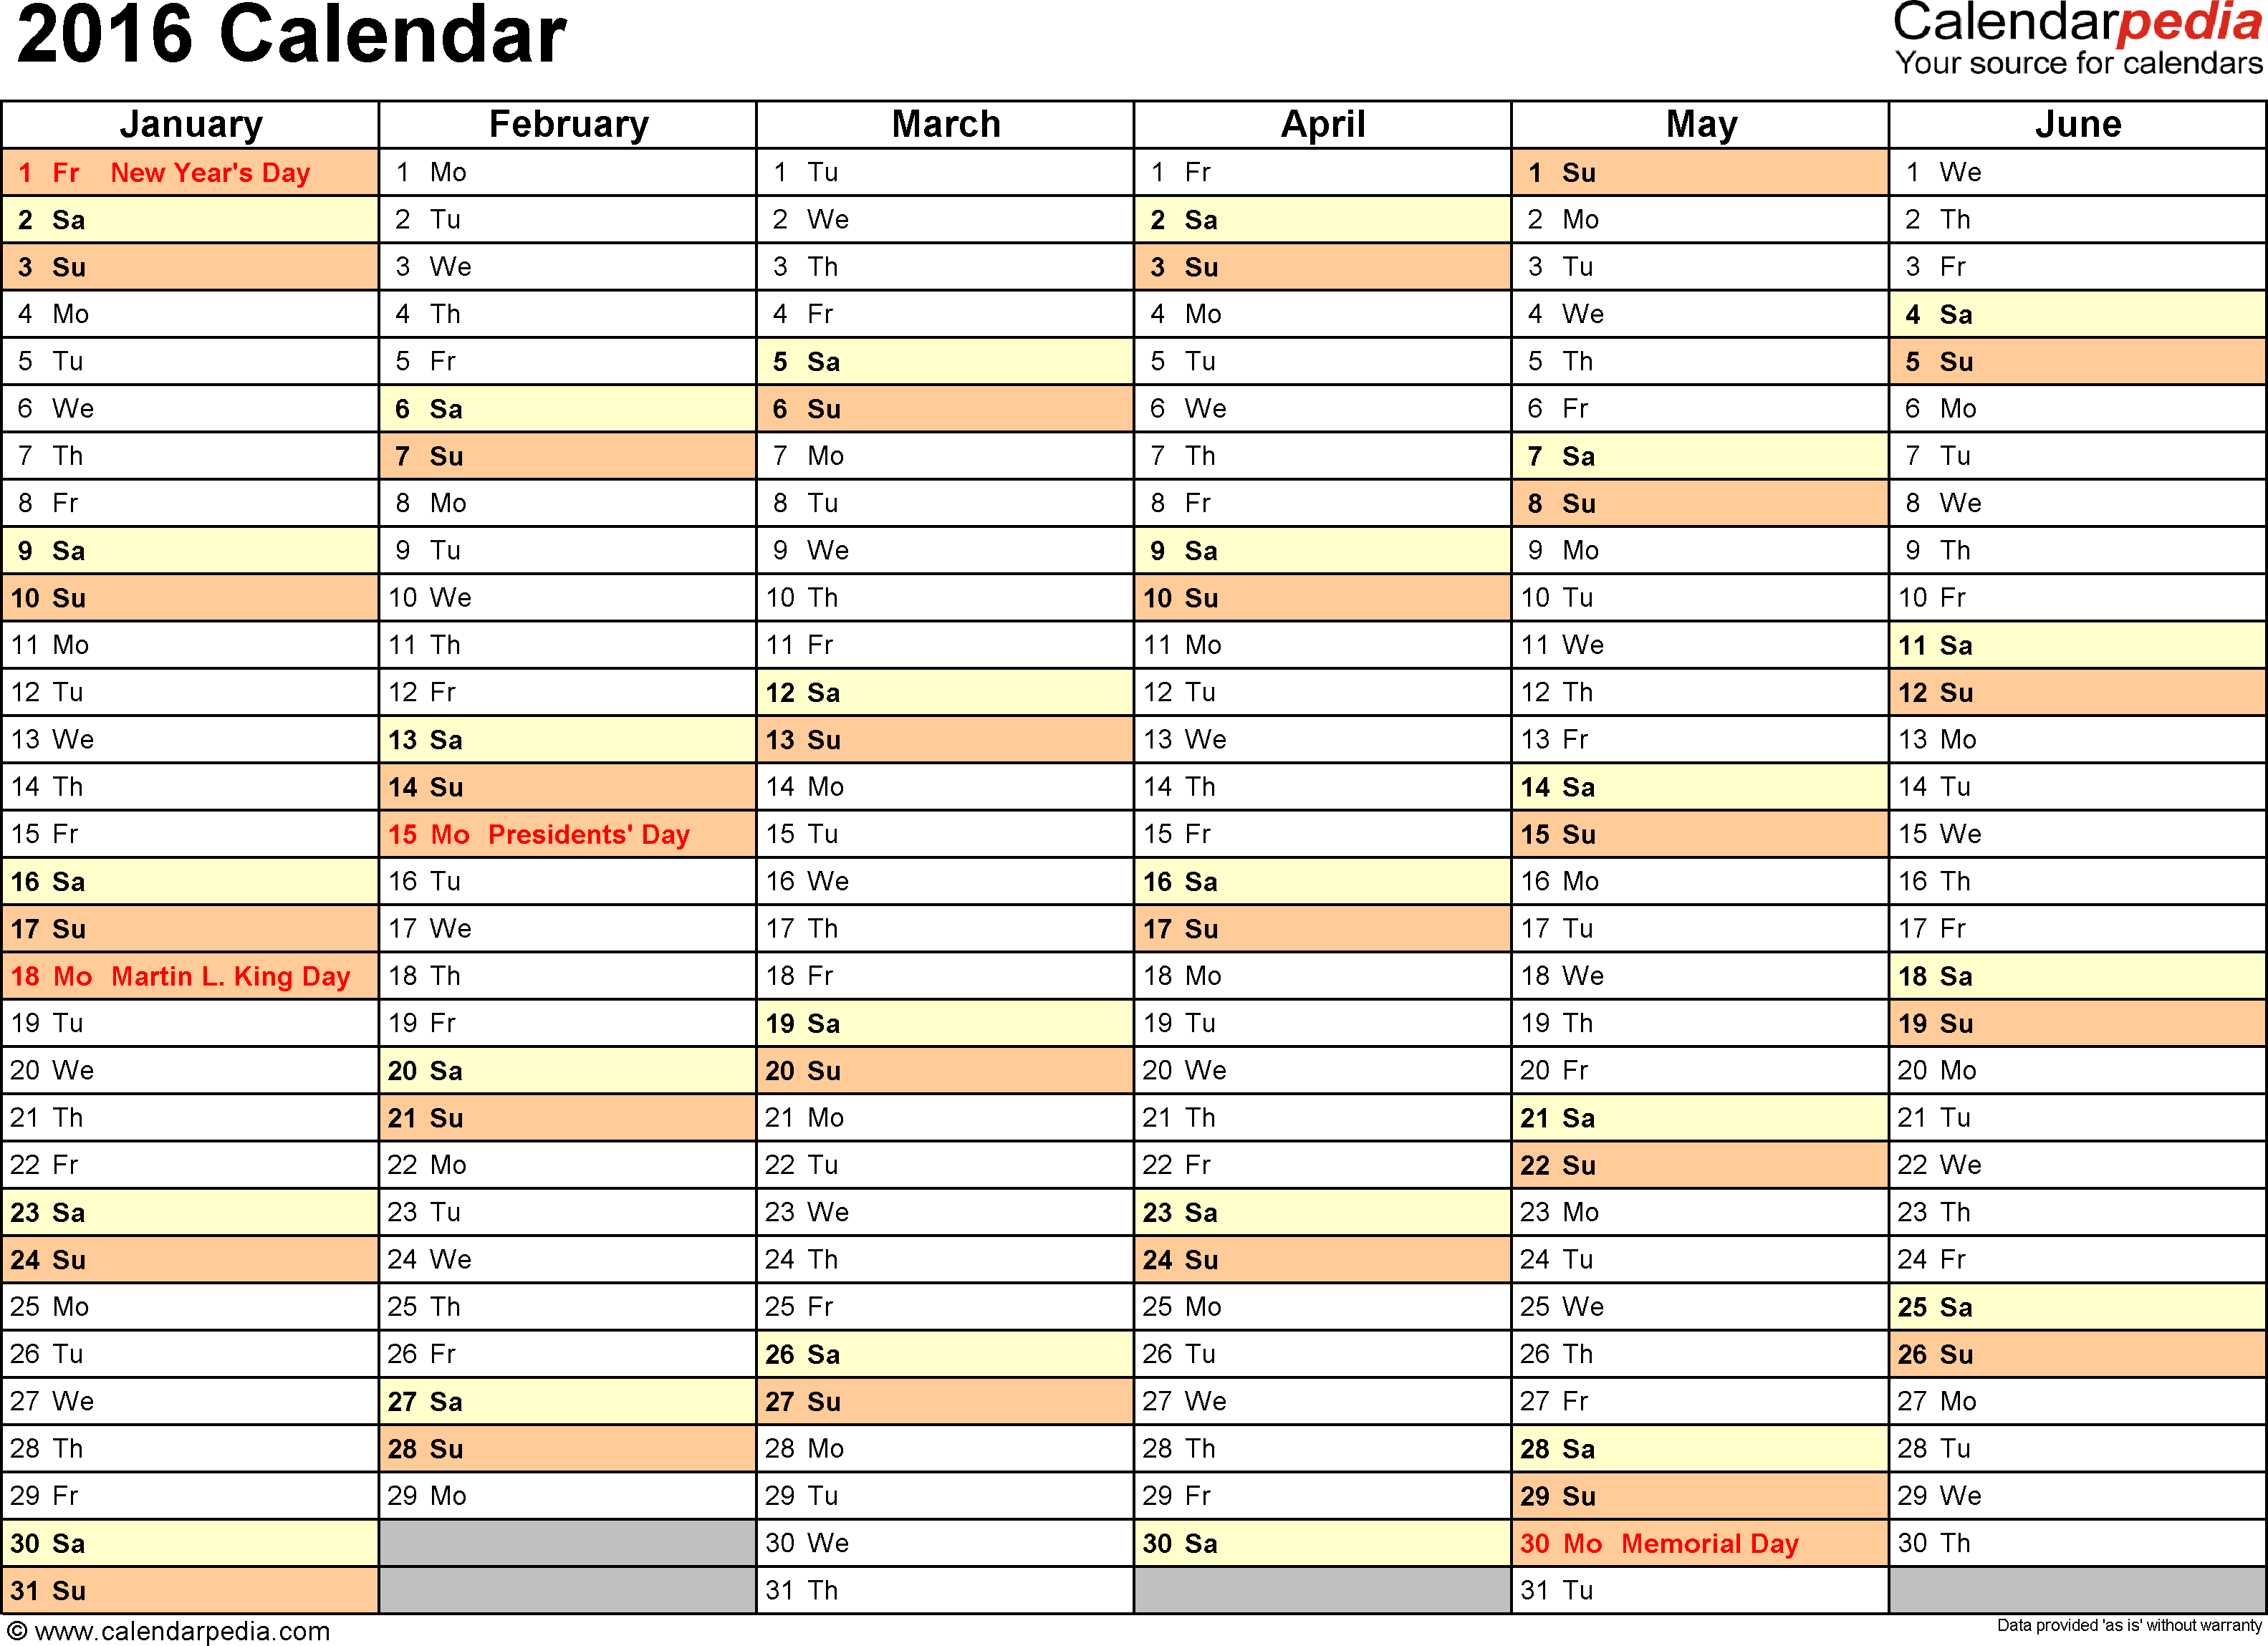 Ediblewildsus  Surprising  Calendar  Download  Free Printable Excel Templates Xls With Excellent Template   Calendar For Excel Months Horizontally  Pages Landscape Orientation With Enchanting Excel Vba Protect Also Excel Secondary Vertical Axis In Addition Breakeven Excel And Excel Formulas Concatenate As Well As Remove Password From Excel Sheet Additionally Excel Vlookup Count From Calendarpediacom With Ediblewildsus  Excellent  Calendar  Download  Free Printable Excel Templates Xls With Enchanting Template   Calendar For Excel Months Horizontally  Pages Landscape Orientation And Surprising Excel Vba Protect Also Excel Secondary Vertical Axis In Addition Breakeven Excel From Calendarpediacom